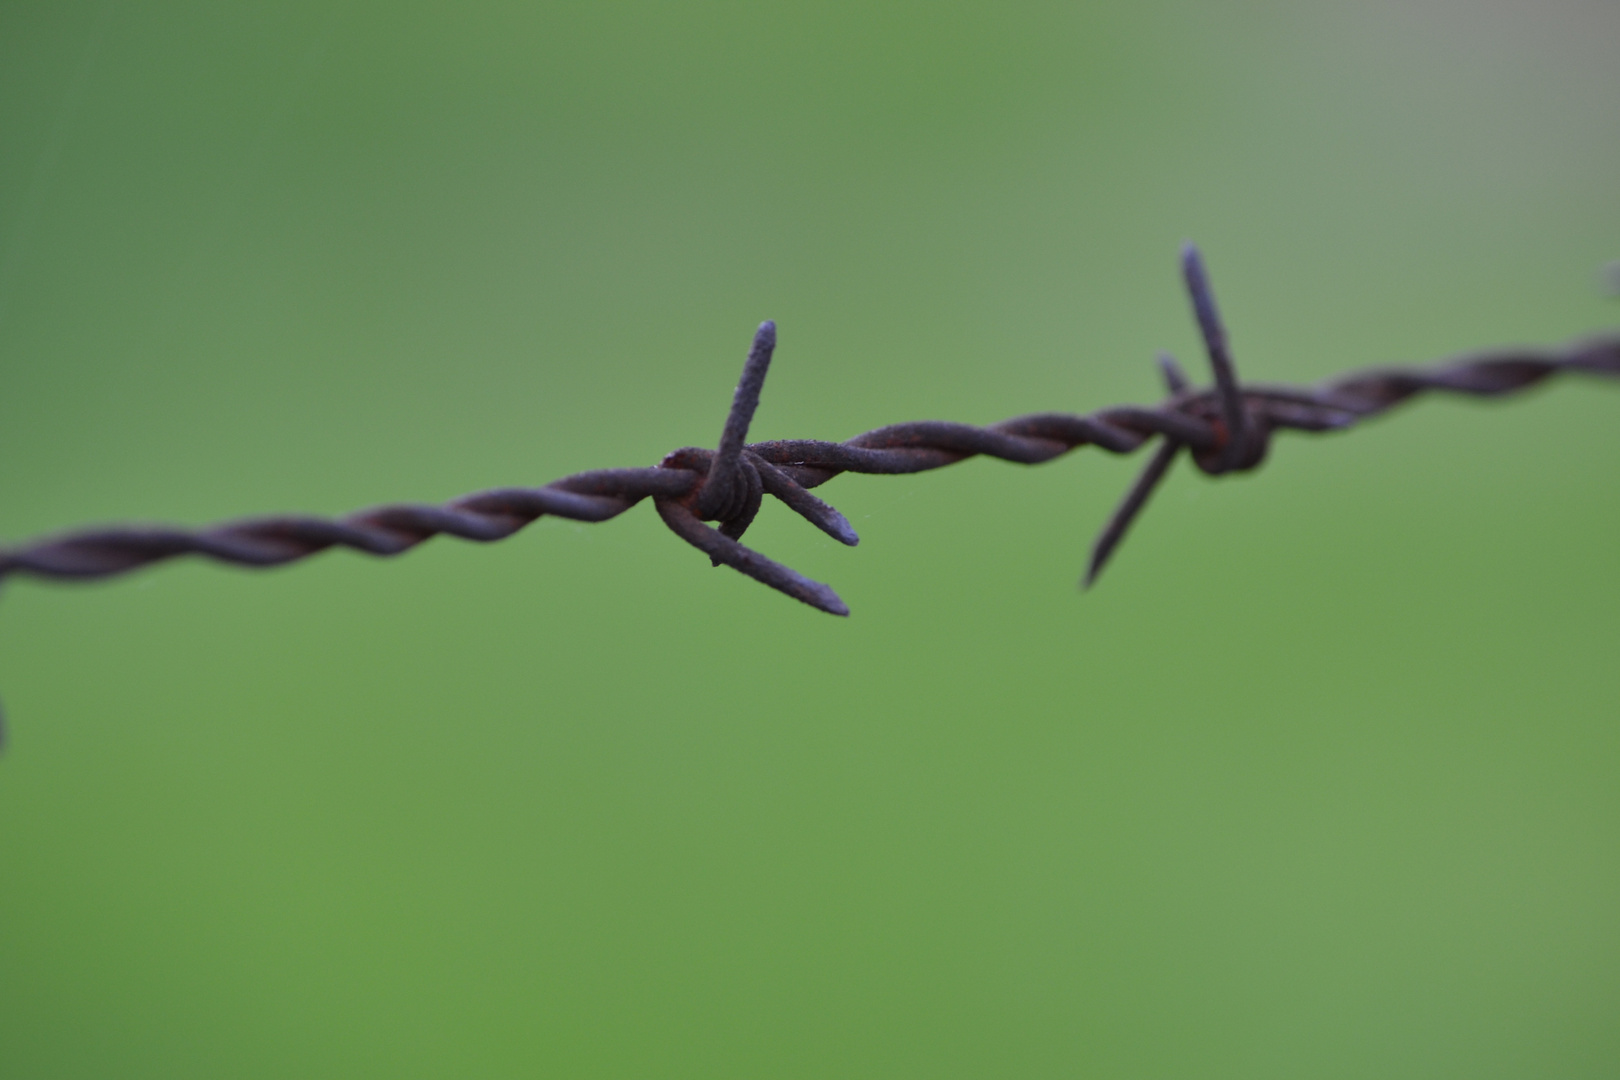 barbed wire :)